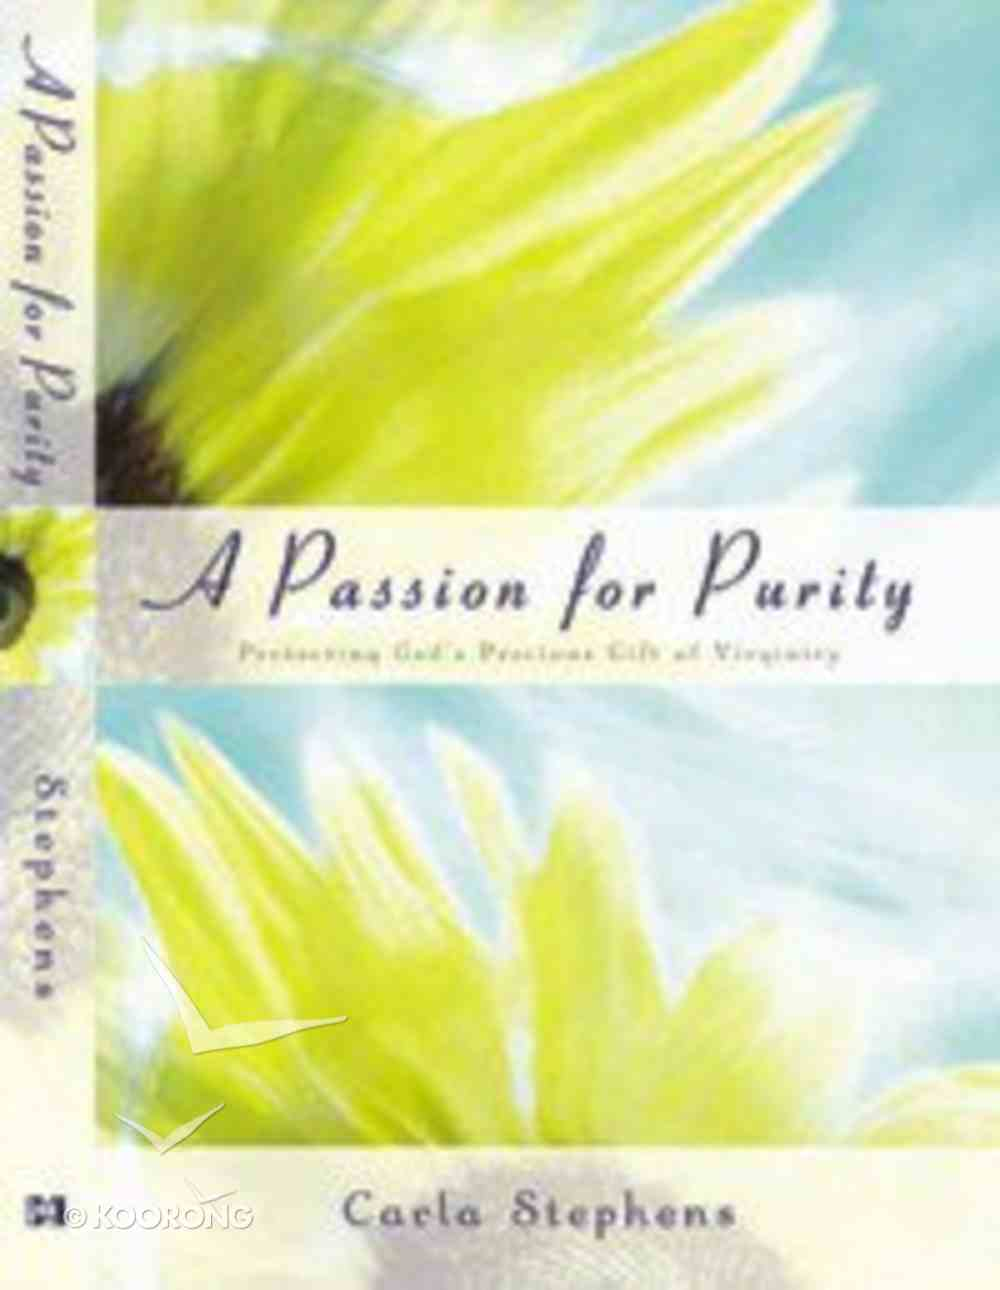 A Passion For Purity Paperback